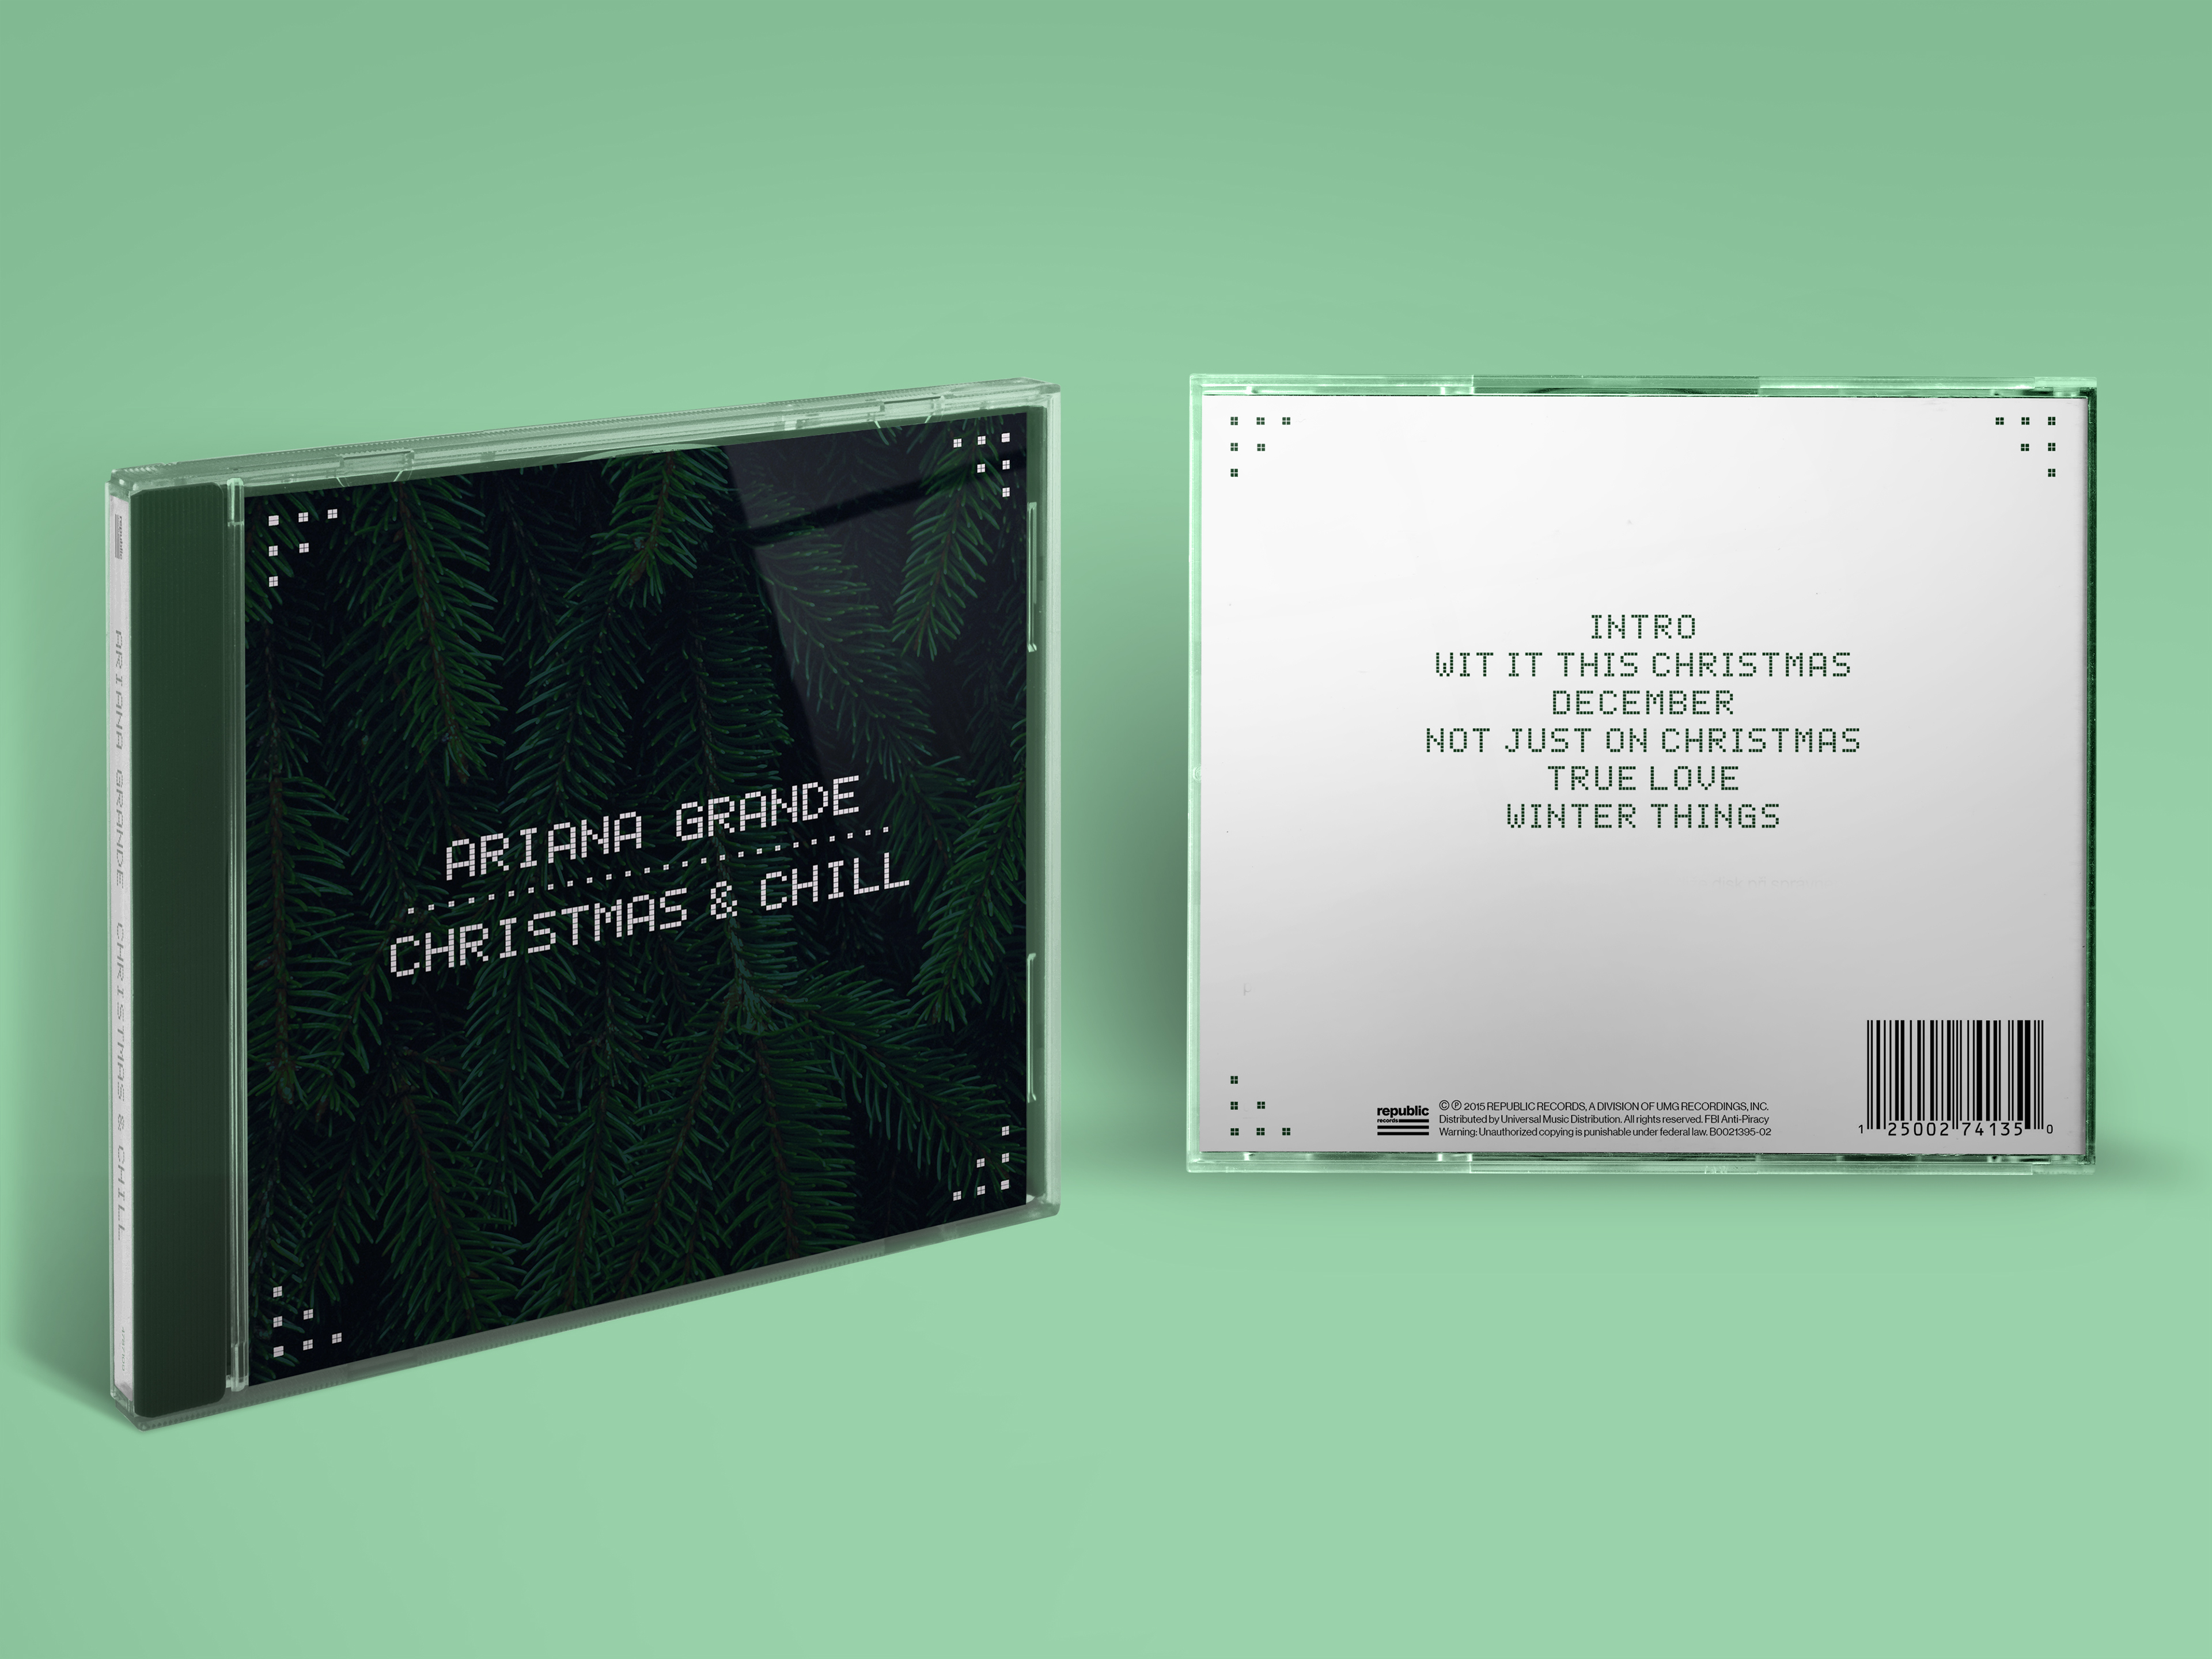 ariana grande christmas and chill cd package design on behance